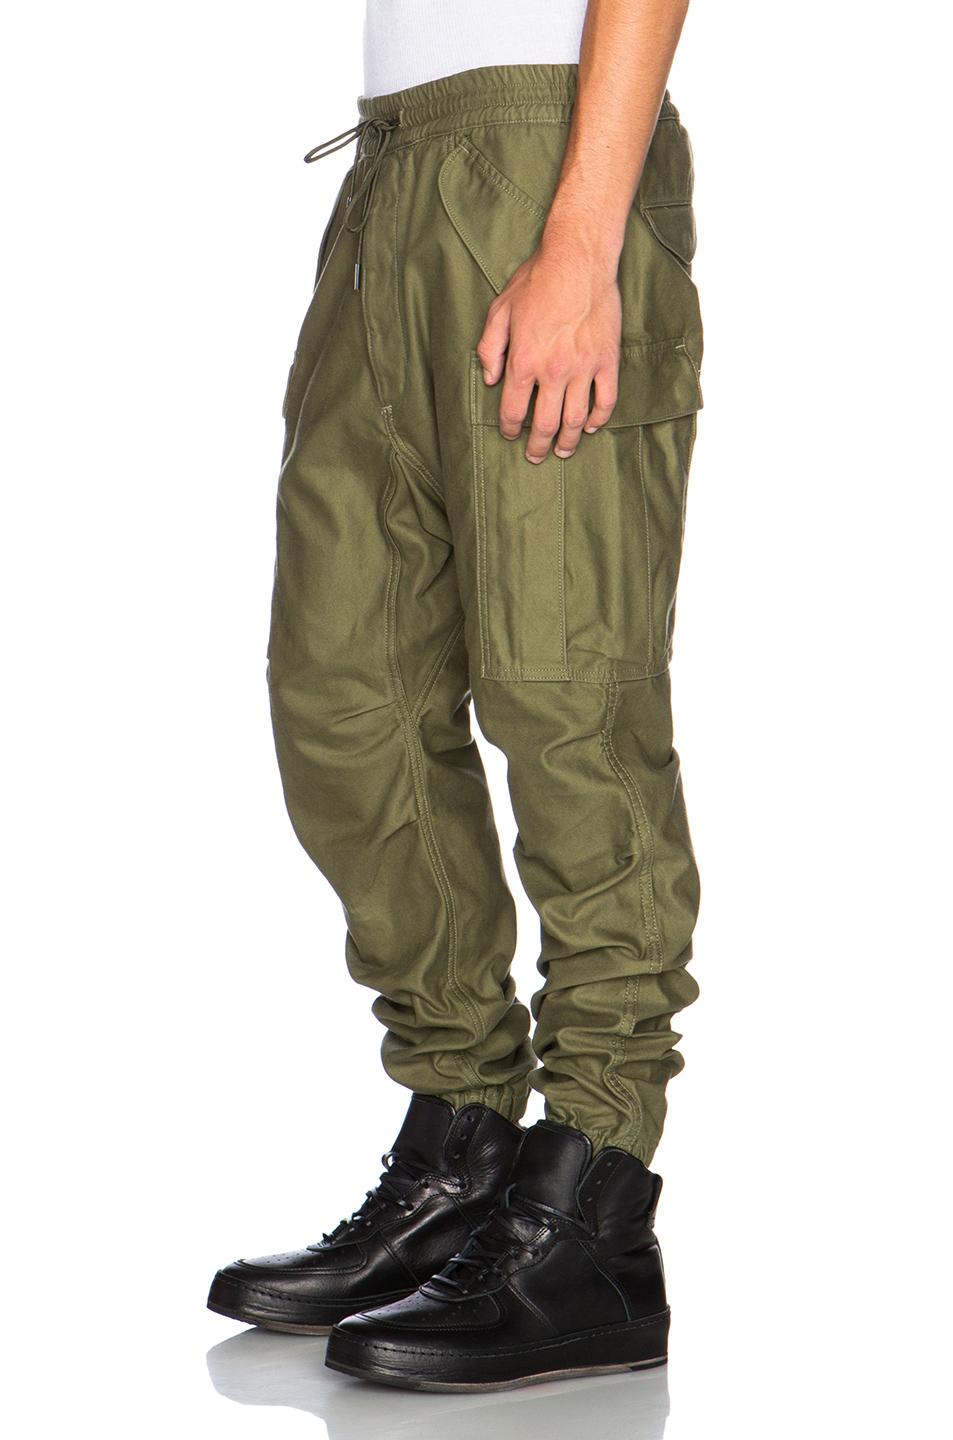 Nlst Men's Cargo Pants in Green | Lyst